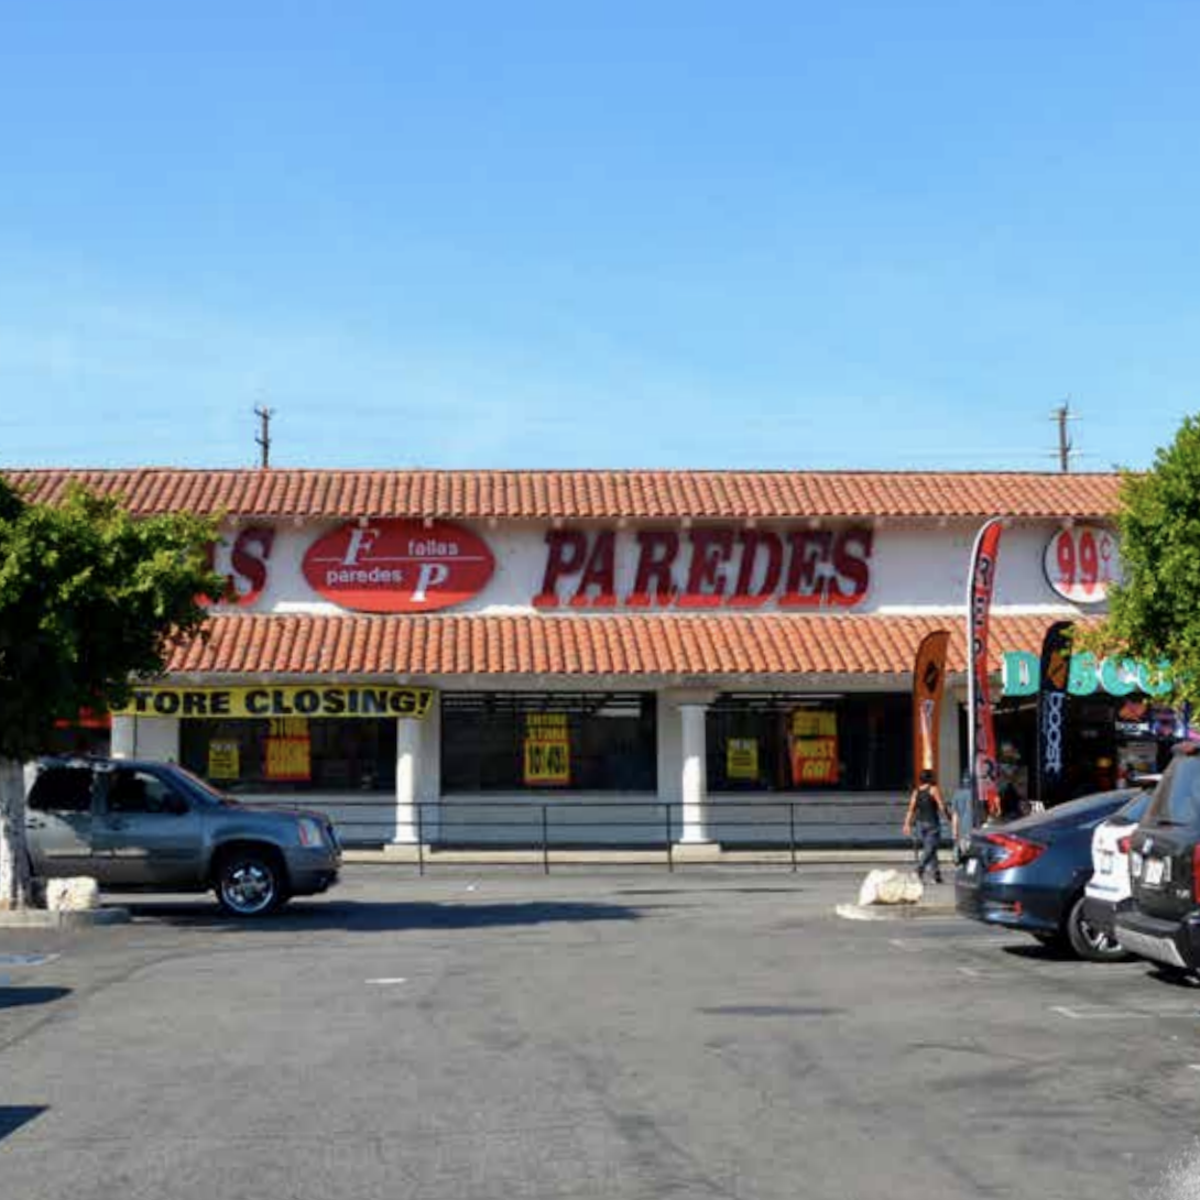 Grocery Outlet - Highland Park Fallas Paredes